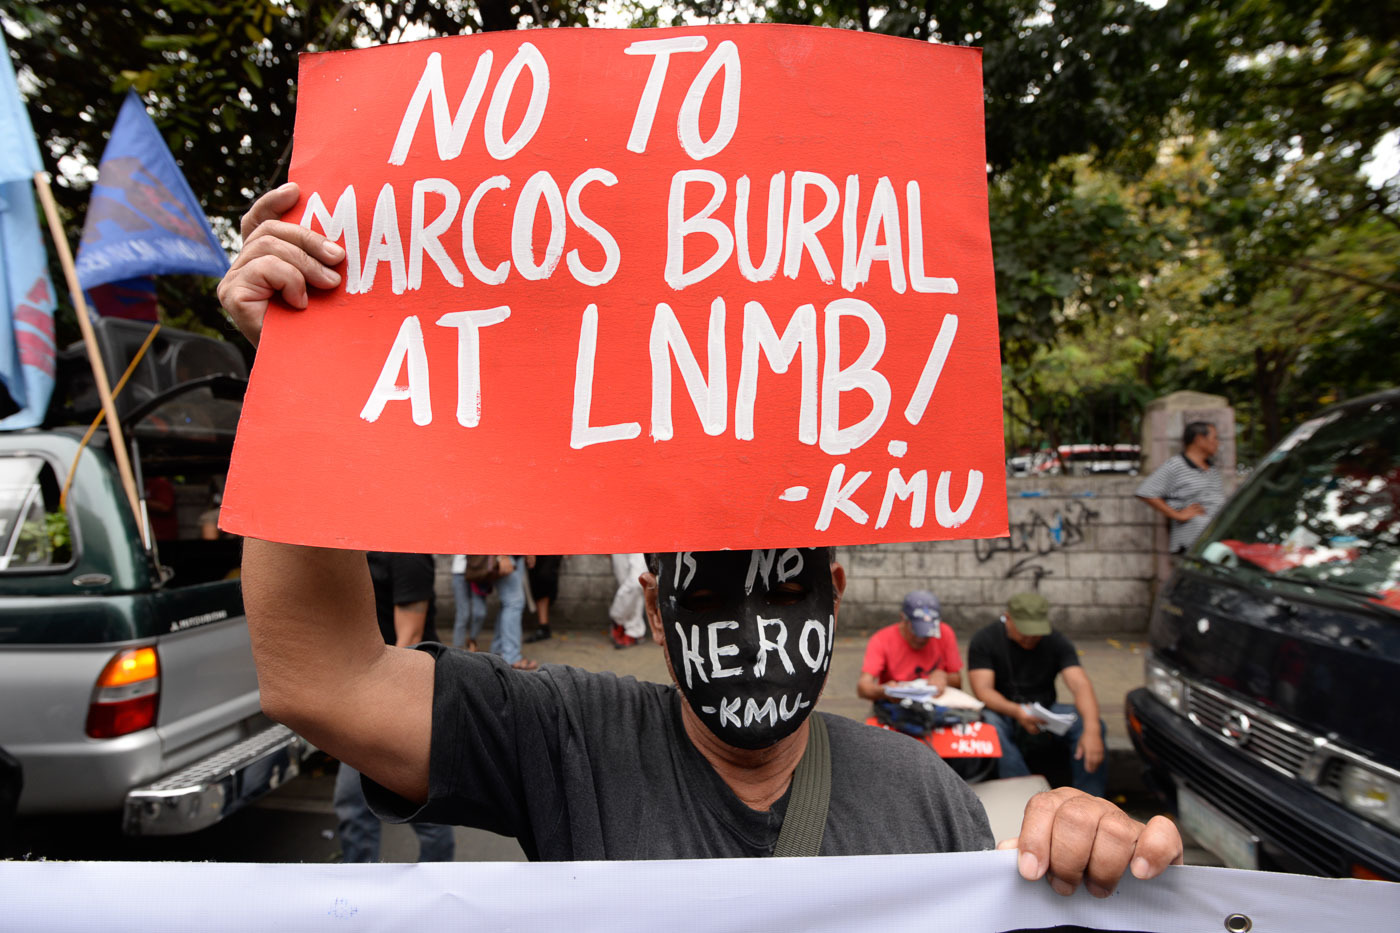 CHR: Rights violations during Martial law not erased by Marcos burial at LNMB